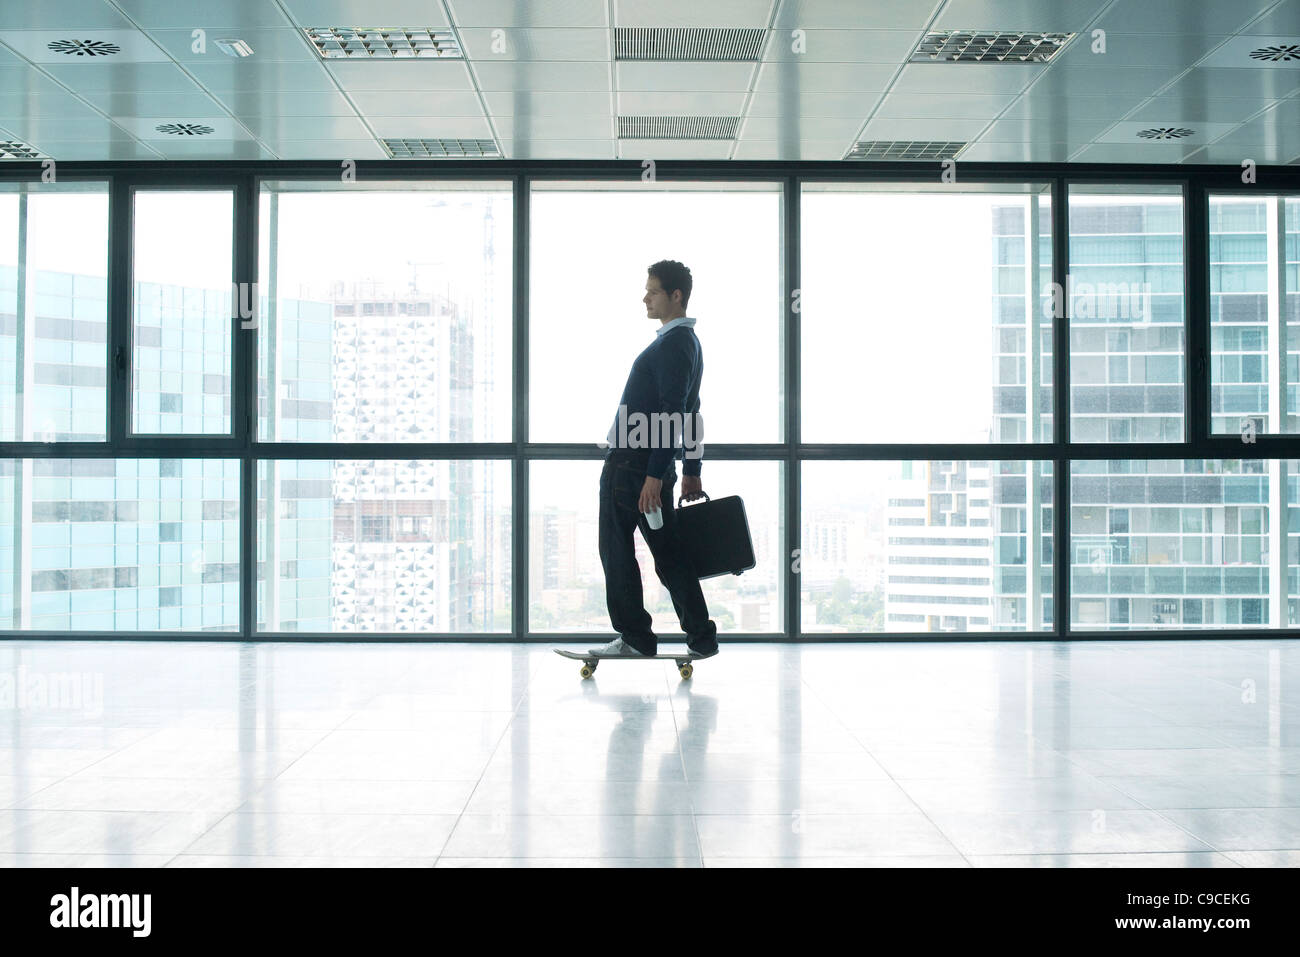 Businessman standing on skateboard with briefcase Photo Stock